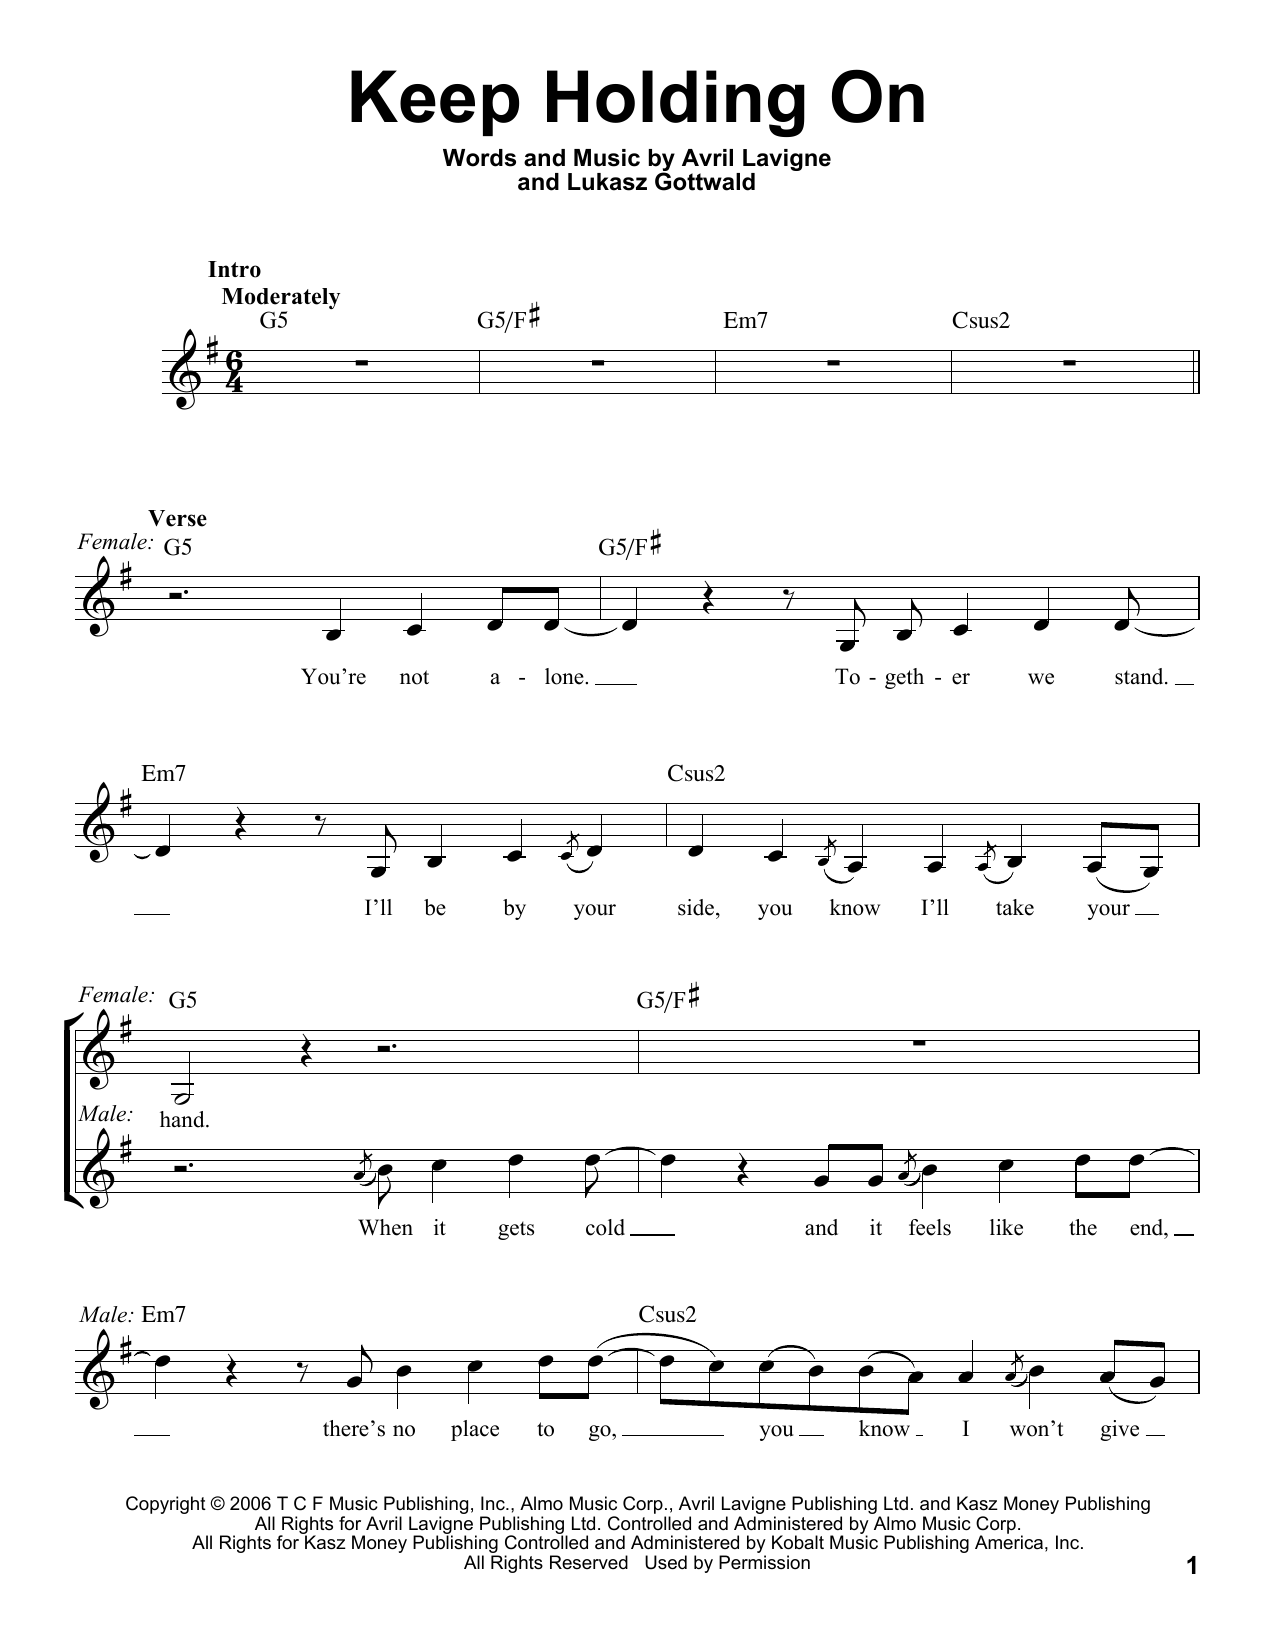 Keep Holding On - Avril Lavigne - Free Piano Sheet Music